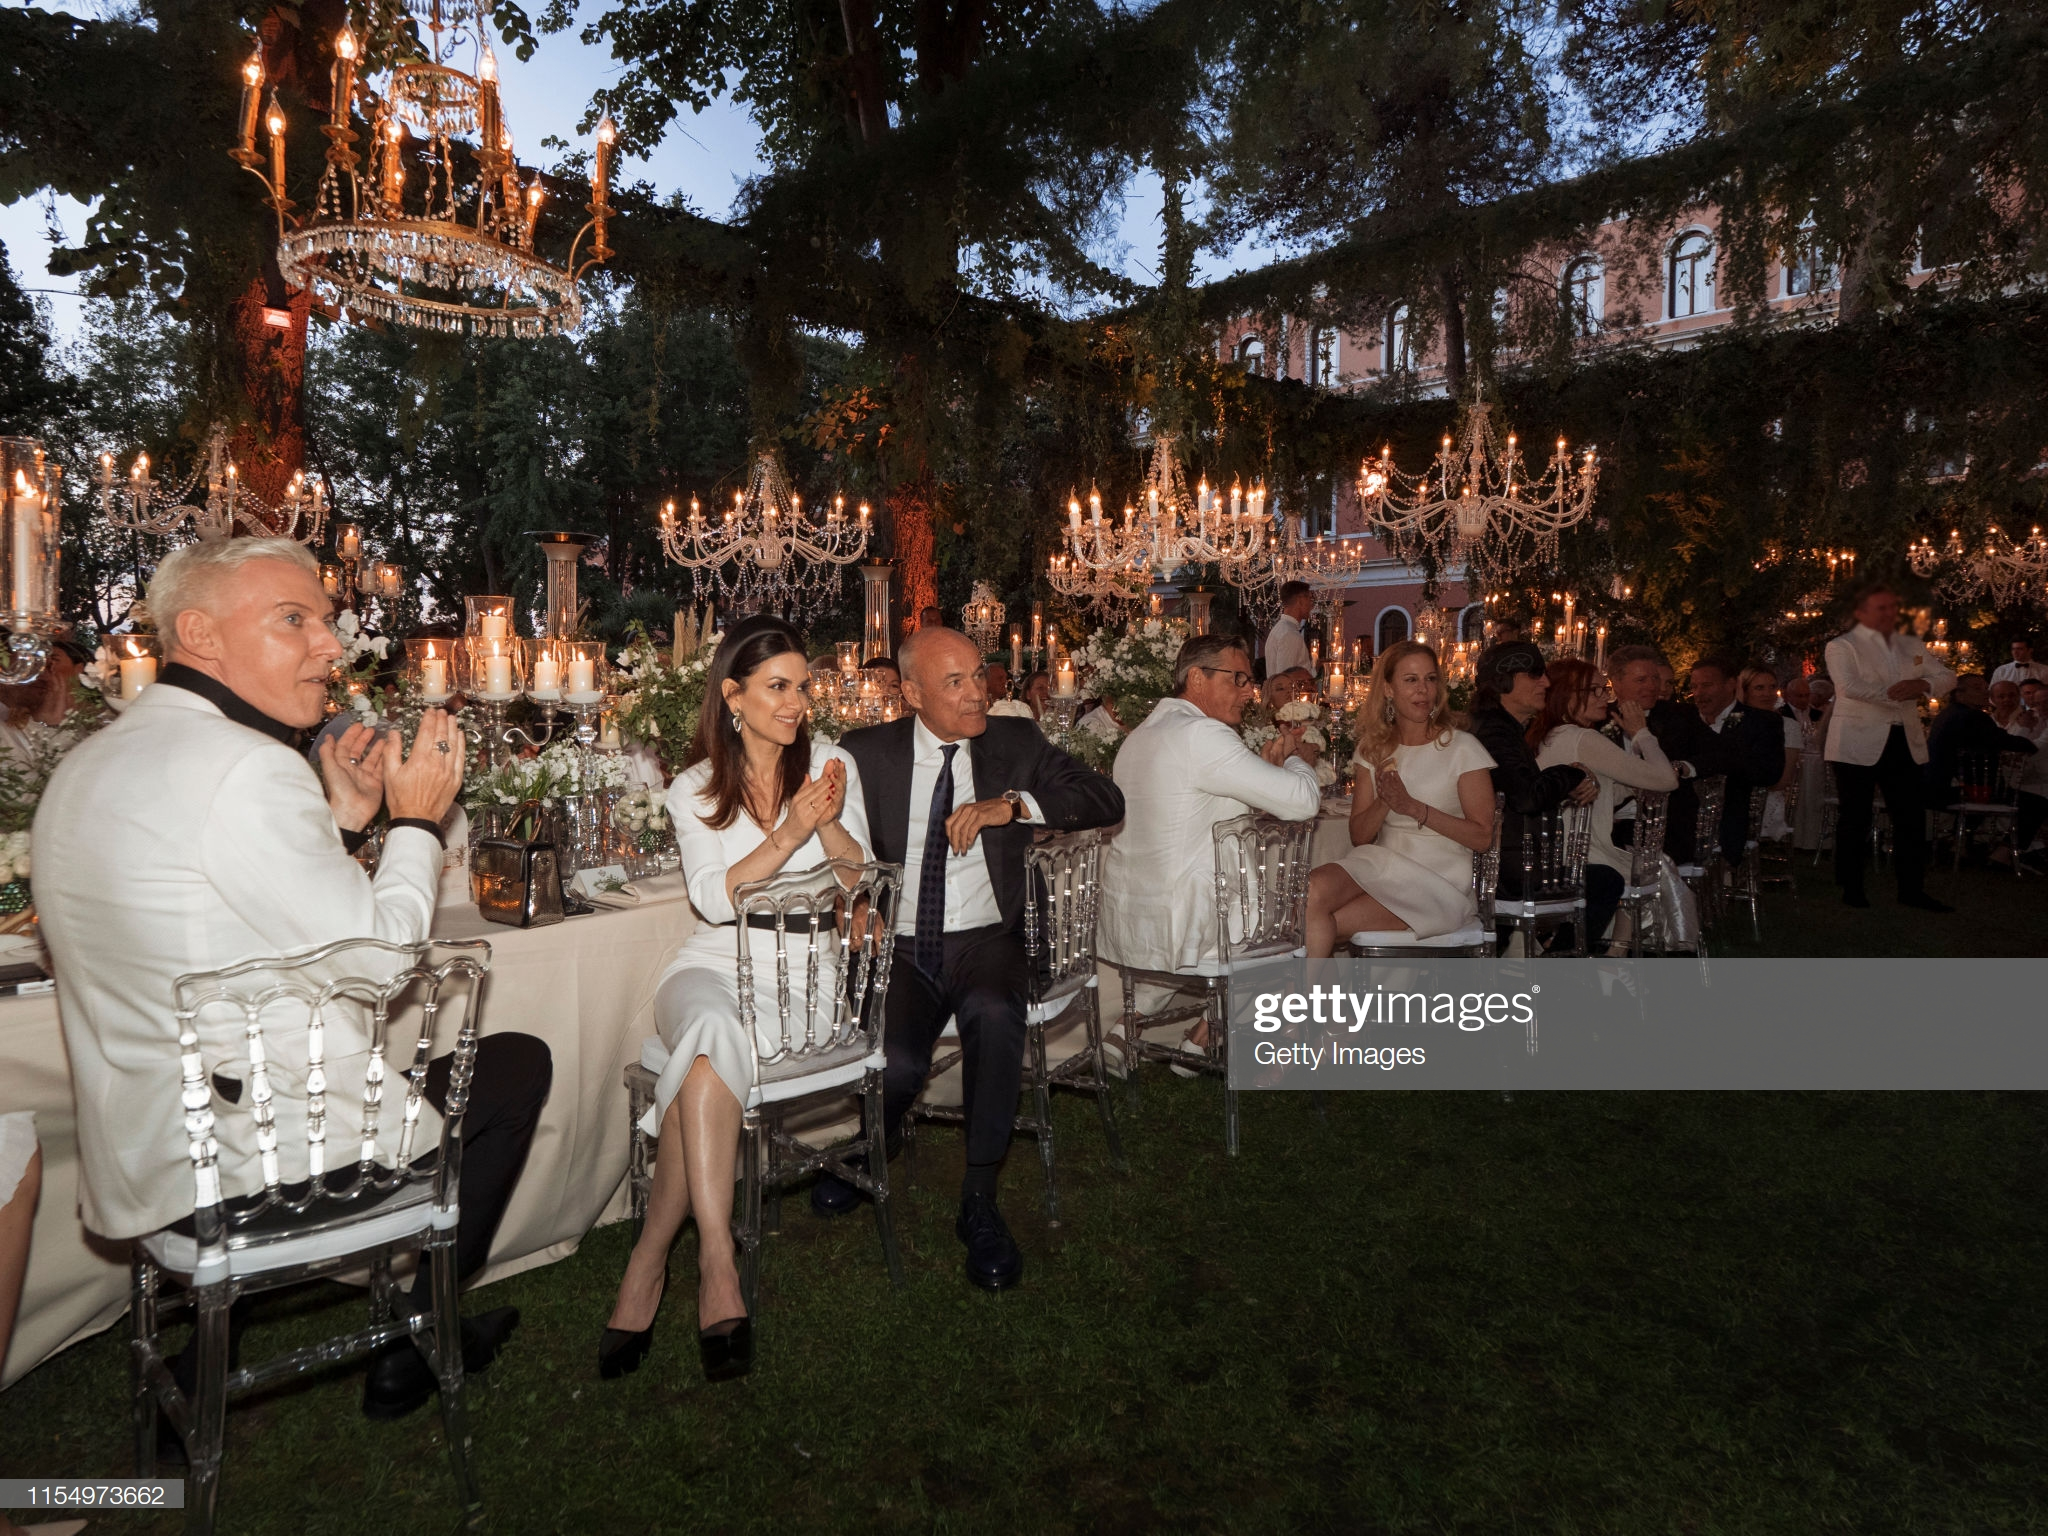 gettyimages-1154973662-2048x2048.jpg